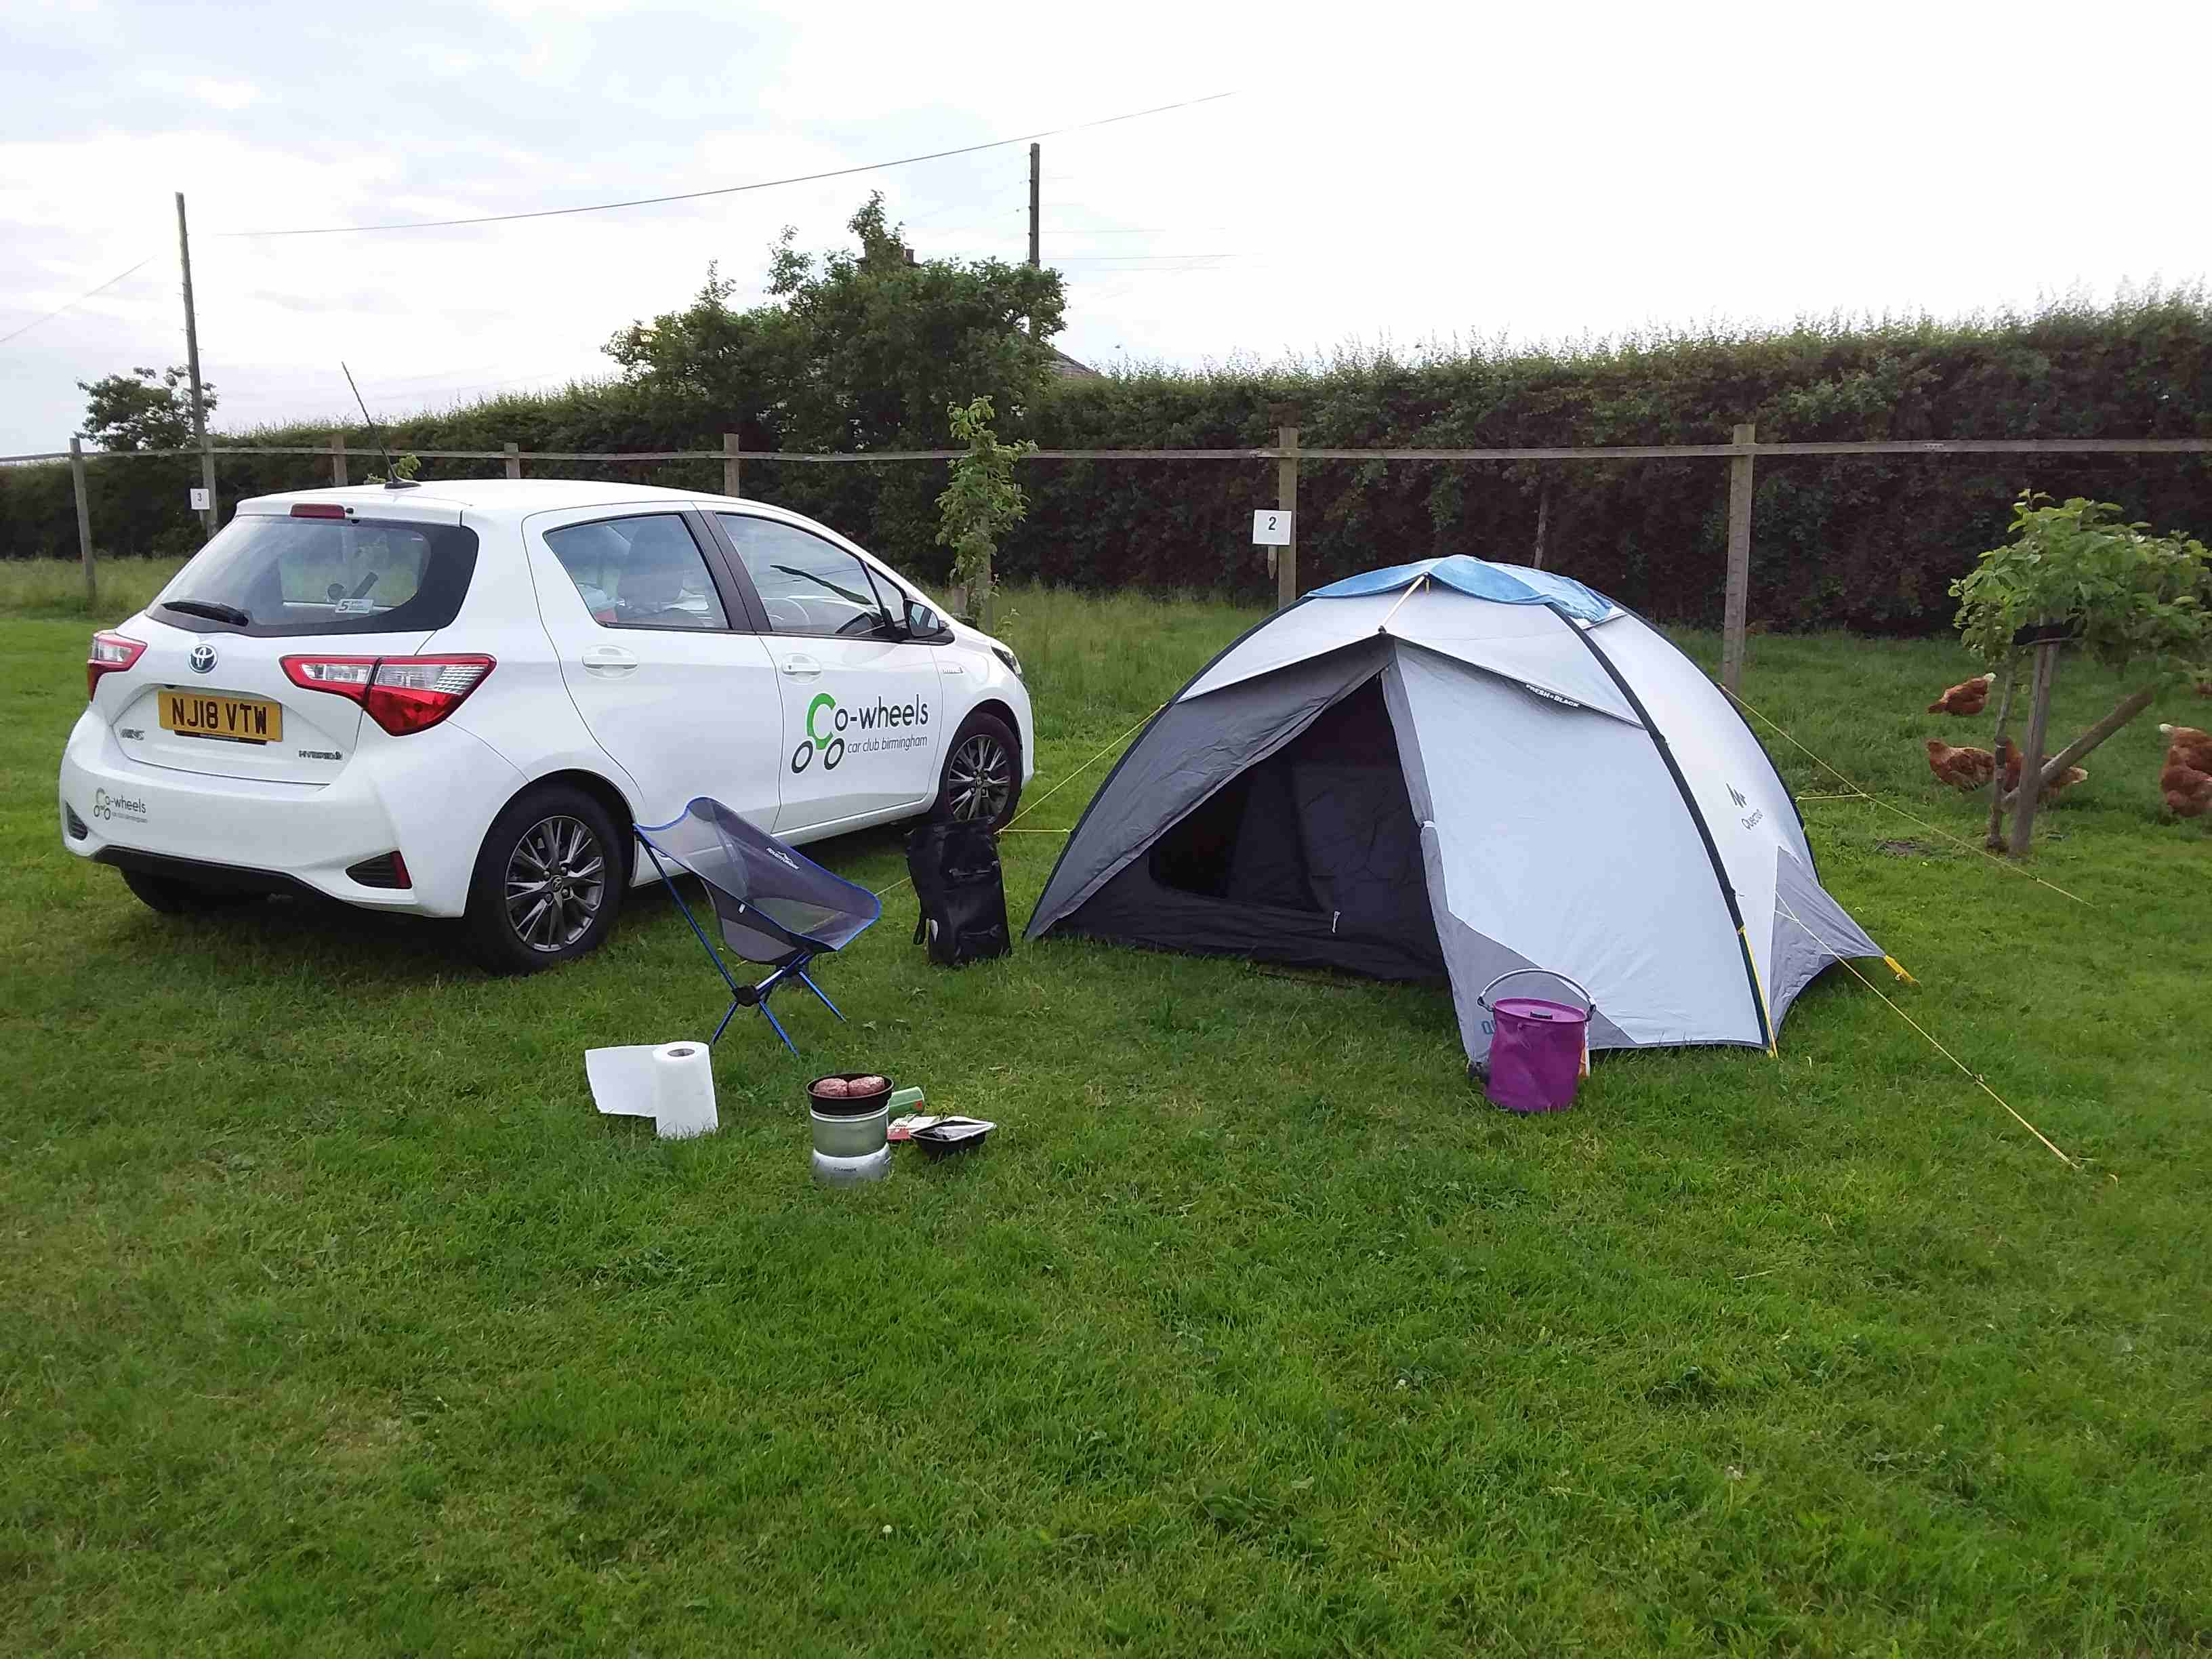 A white Toyota Yaris parked in a camping field next to a white 3-person tent